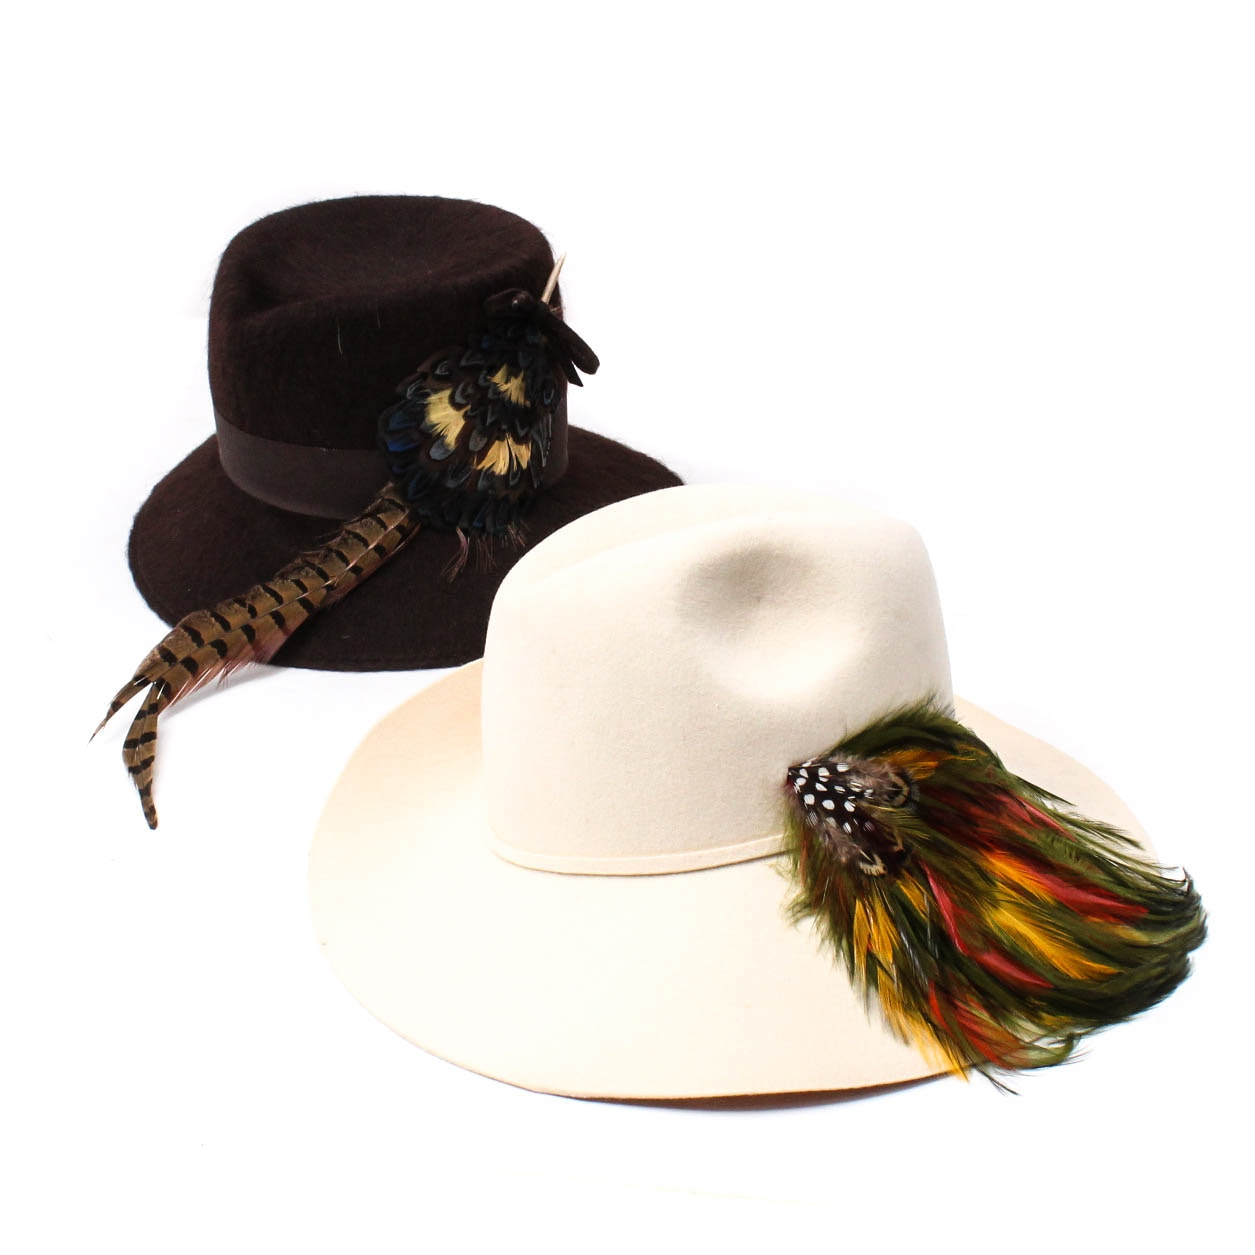 Pair of Felt Hats with Feather Accents